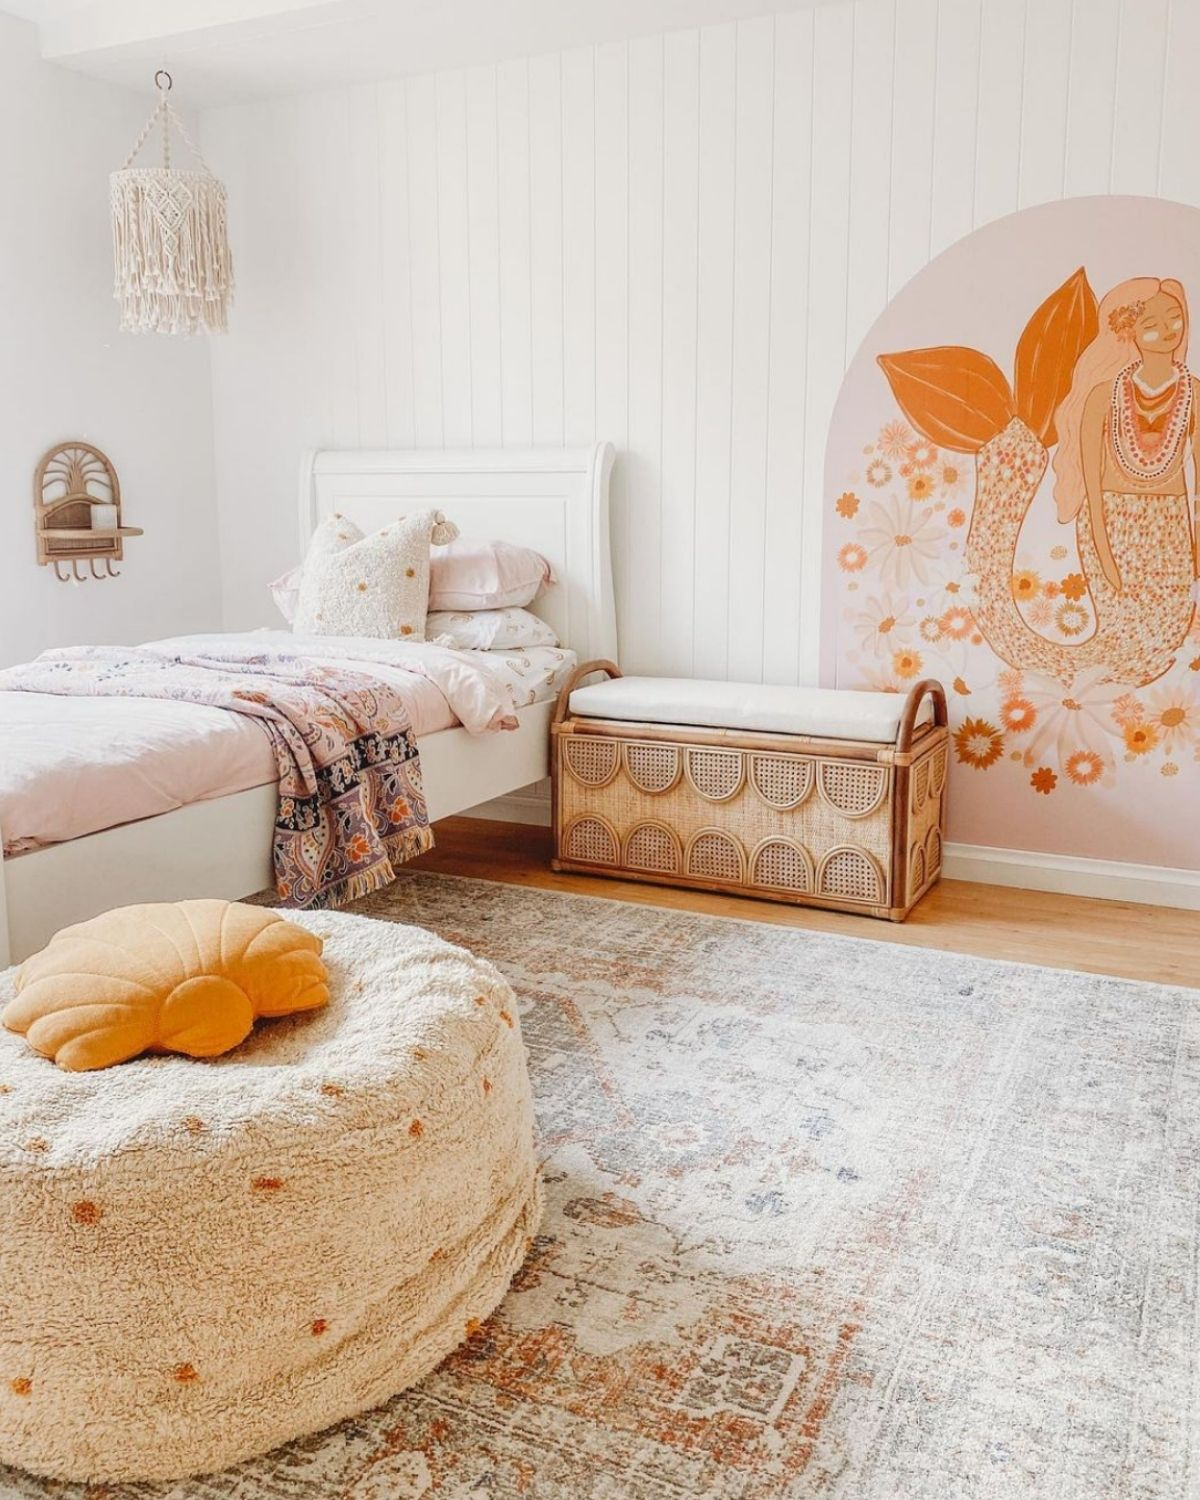 INDIE'S ROOM by Shannon @ourperthreno - 1